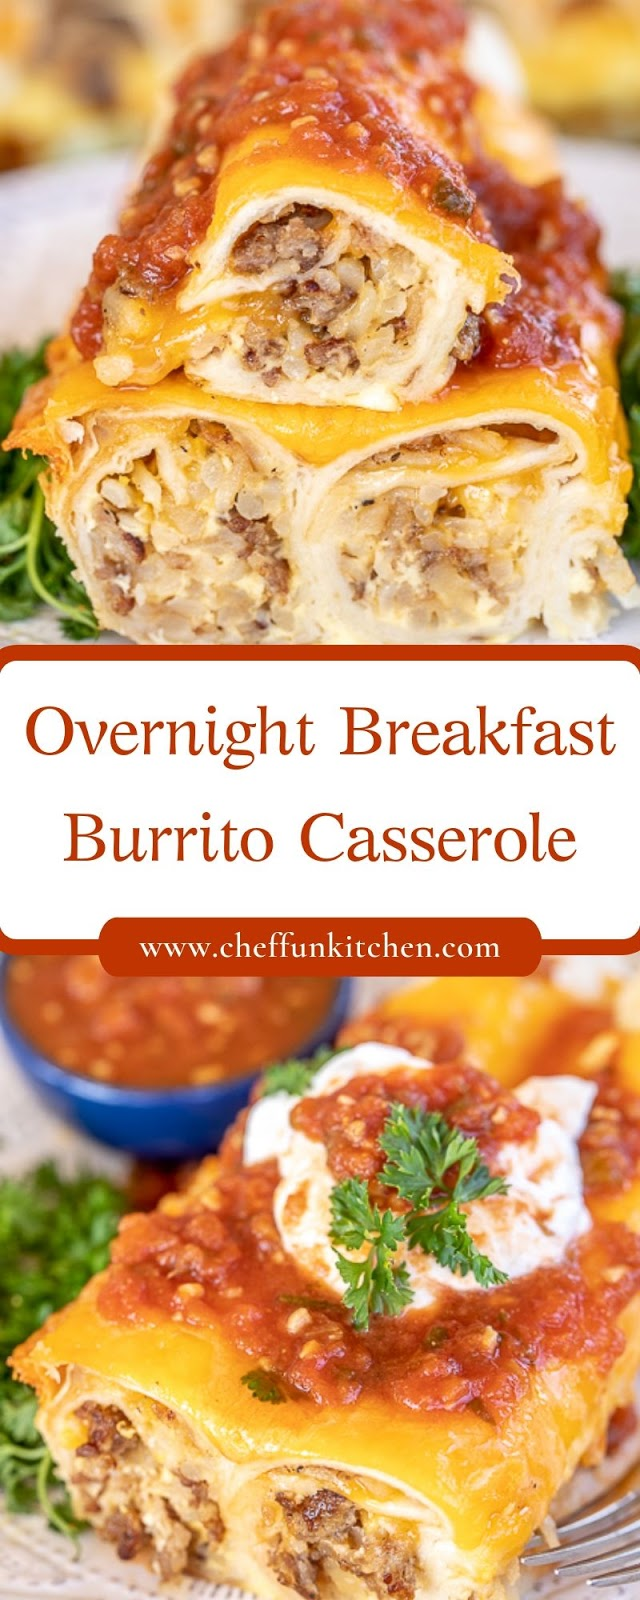 Overnight Breakfast Burrito Casserole